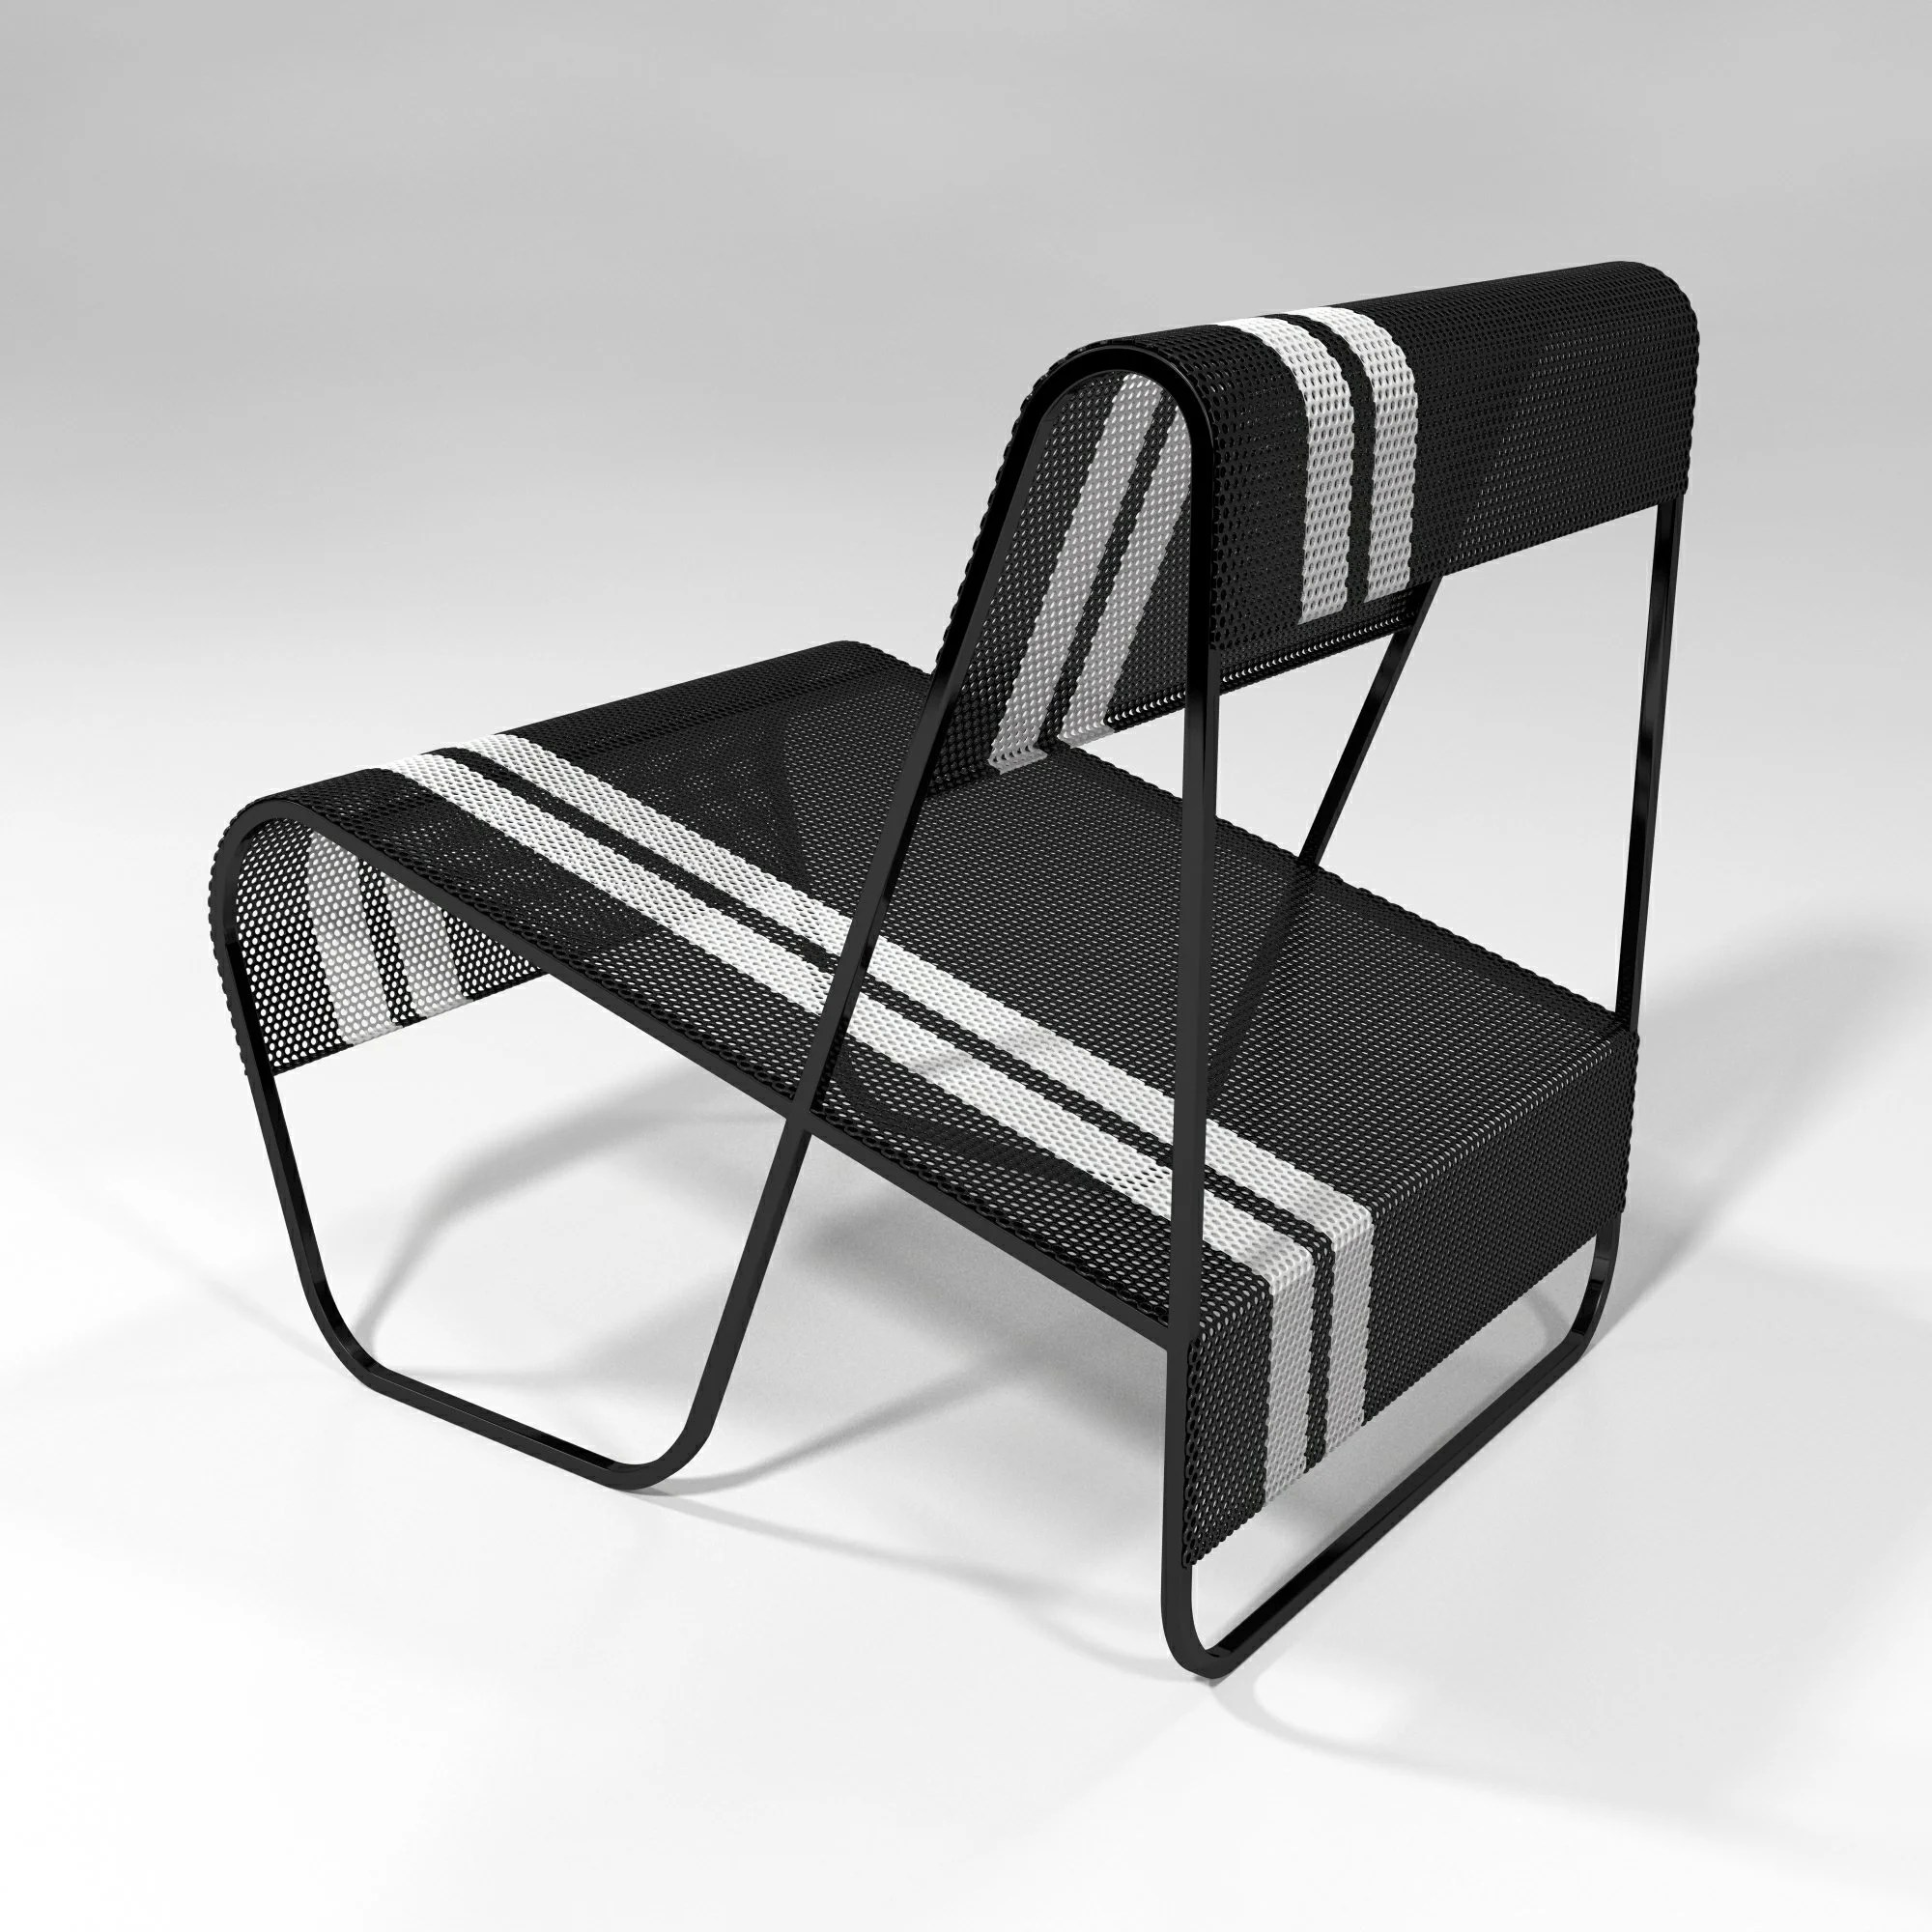 steel lounge chair banquet covers for sale in canada markamoderna lami perforated stainless